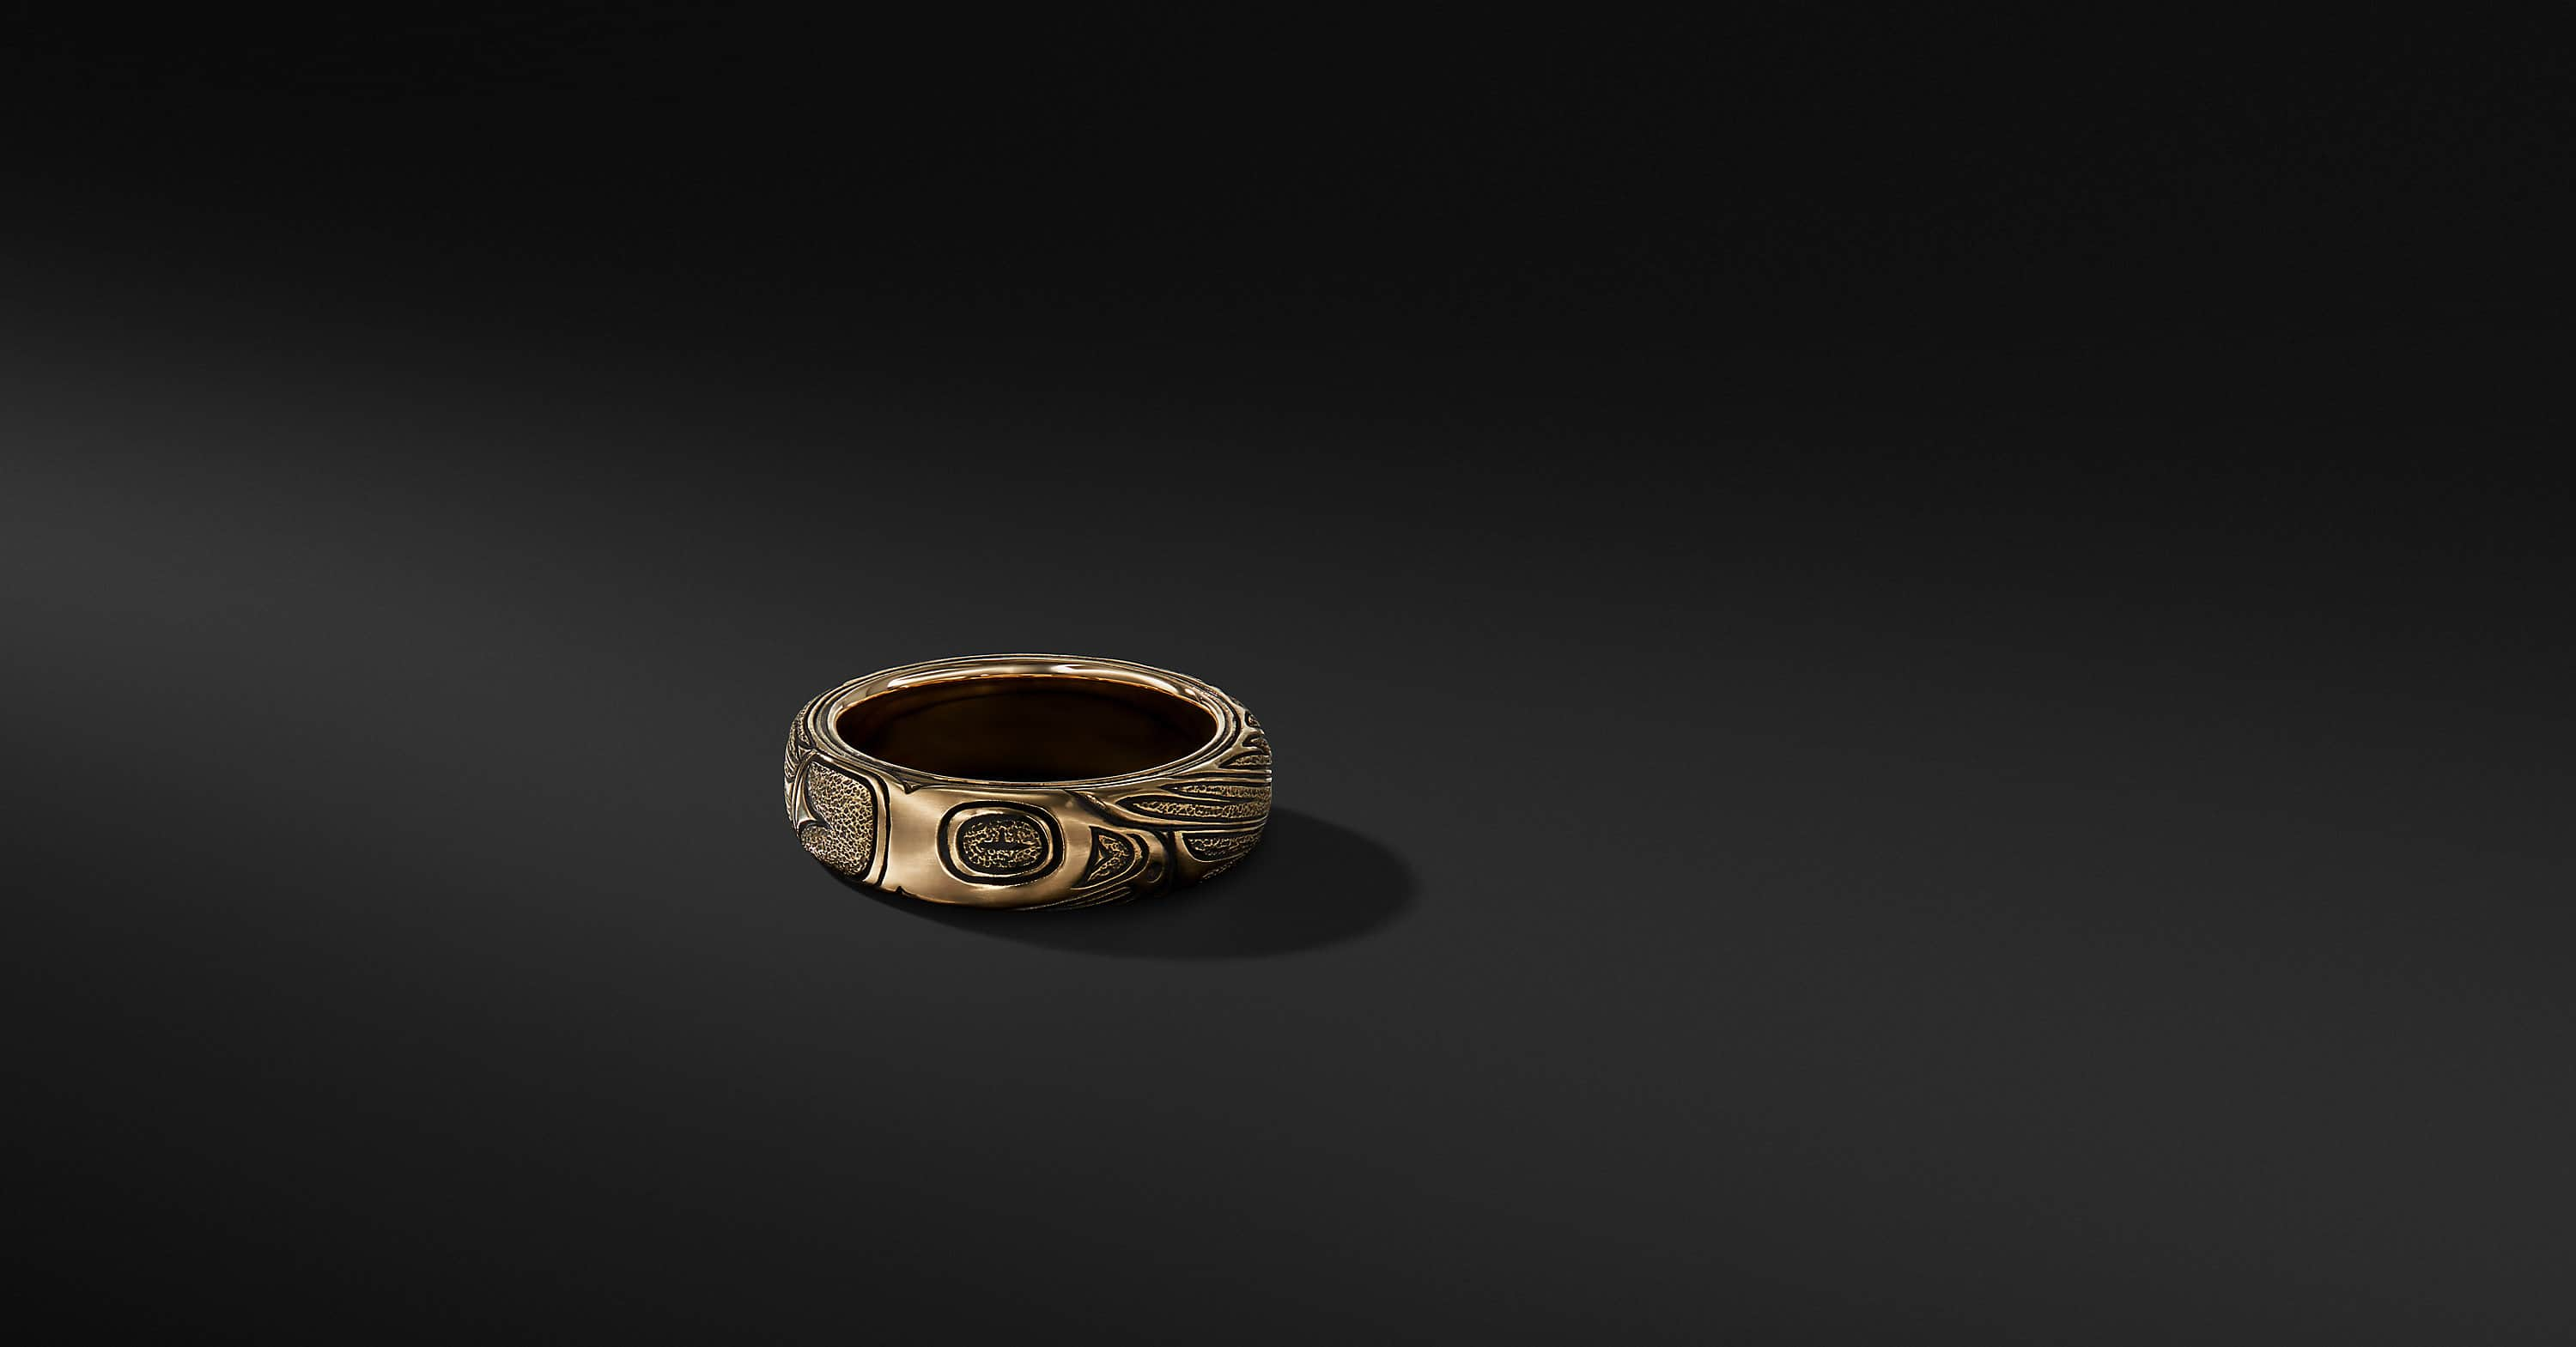 Northwest Band in 18K Gold, 6mm